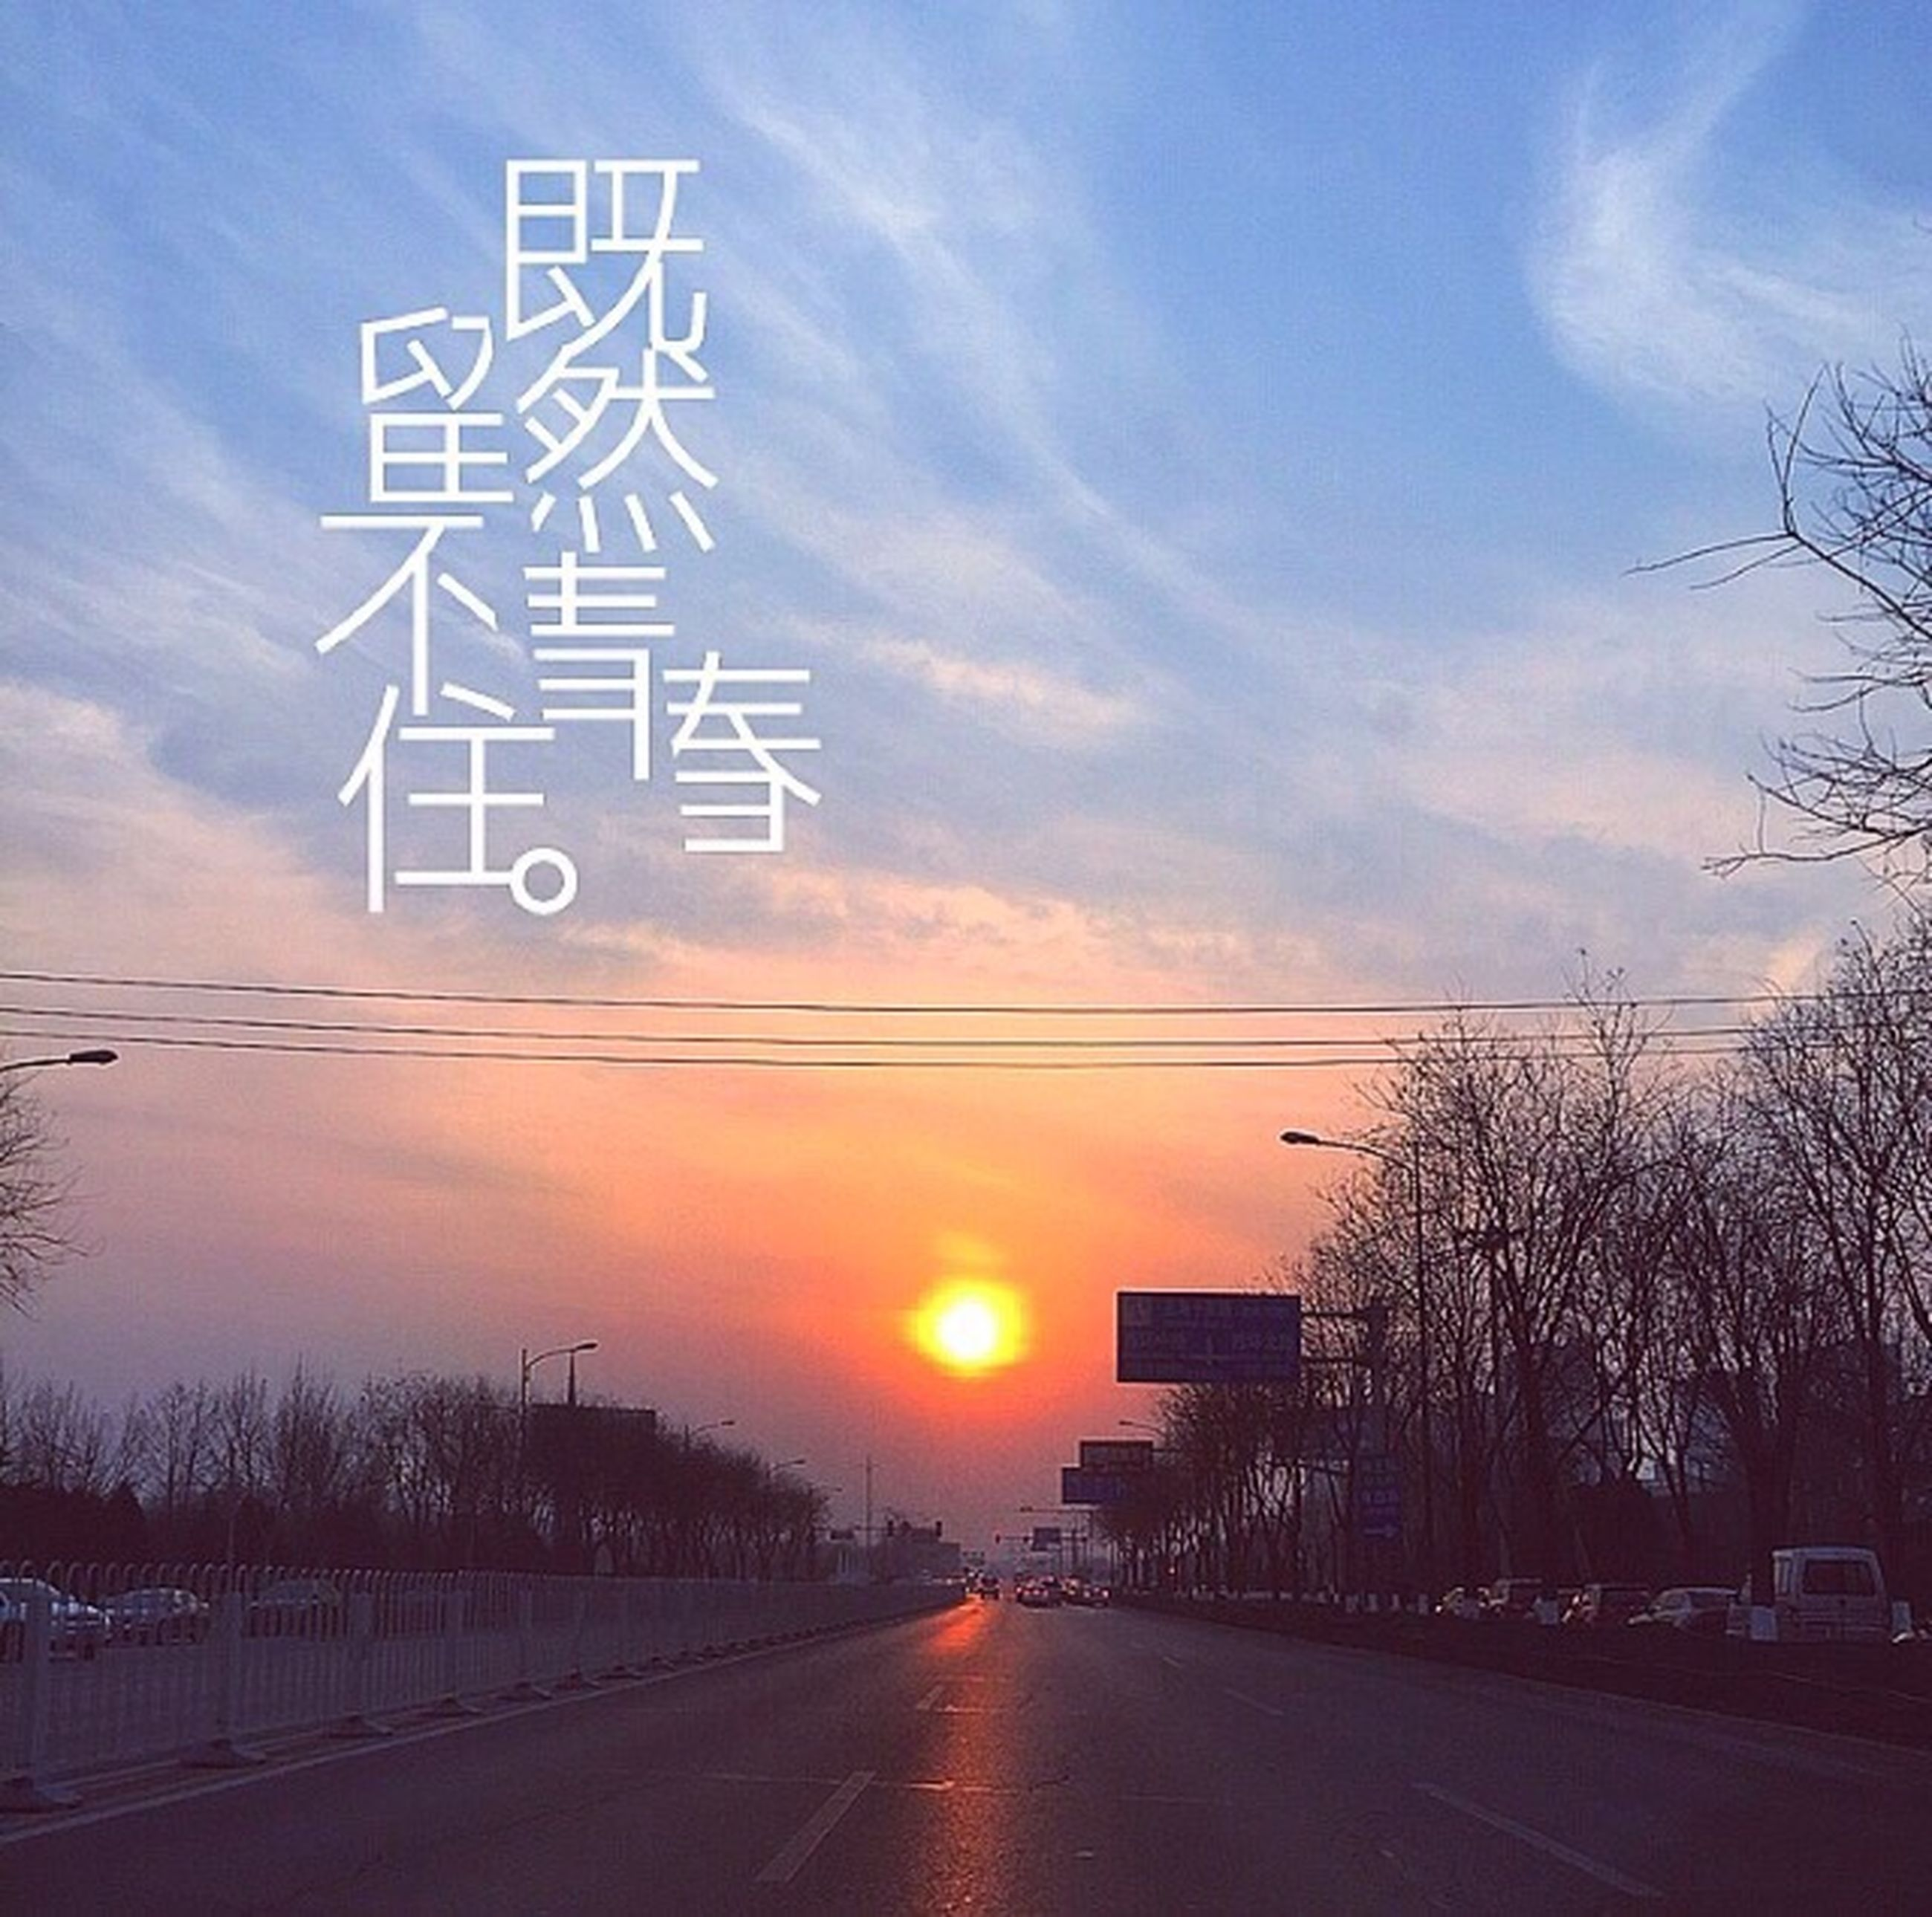 sunset, road, the way forward, sky, transportation, communication, road sign, text, orange color, western script, tree, guidance, information sign, road marking, street, cloud - sky, diminishing perspective, arrow symbol, sign, directional sign